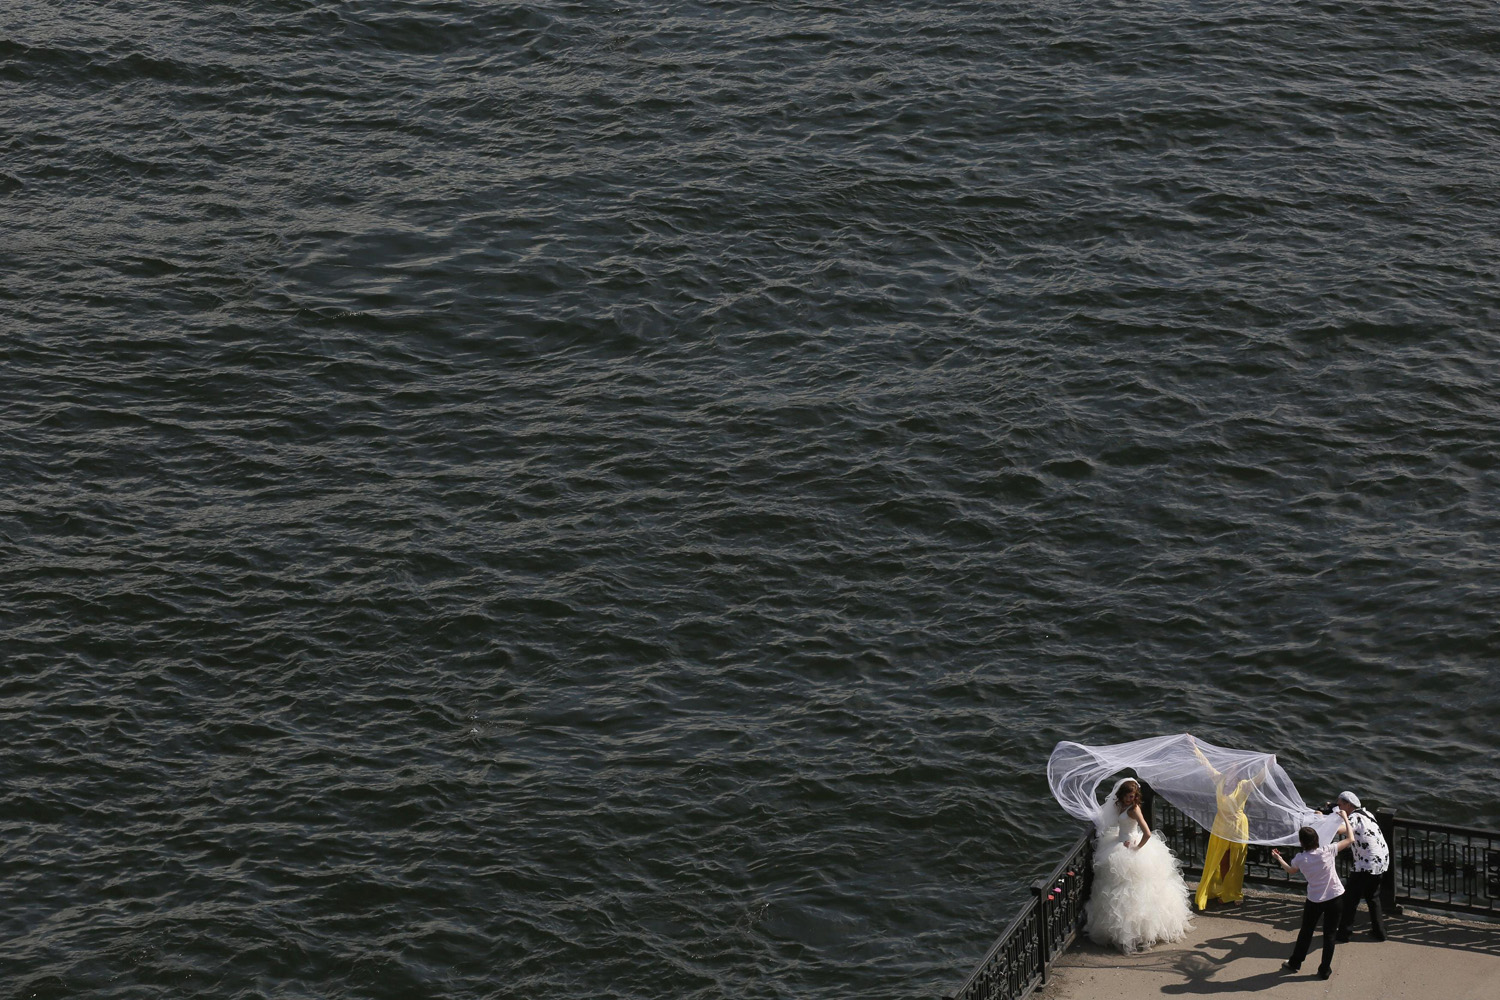 A bride poses for a photographer on an embankment at the Yenisei River in Russia's Siberian city of Krasnoyarsk, June 27, 2014.